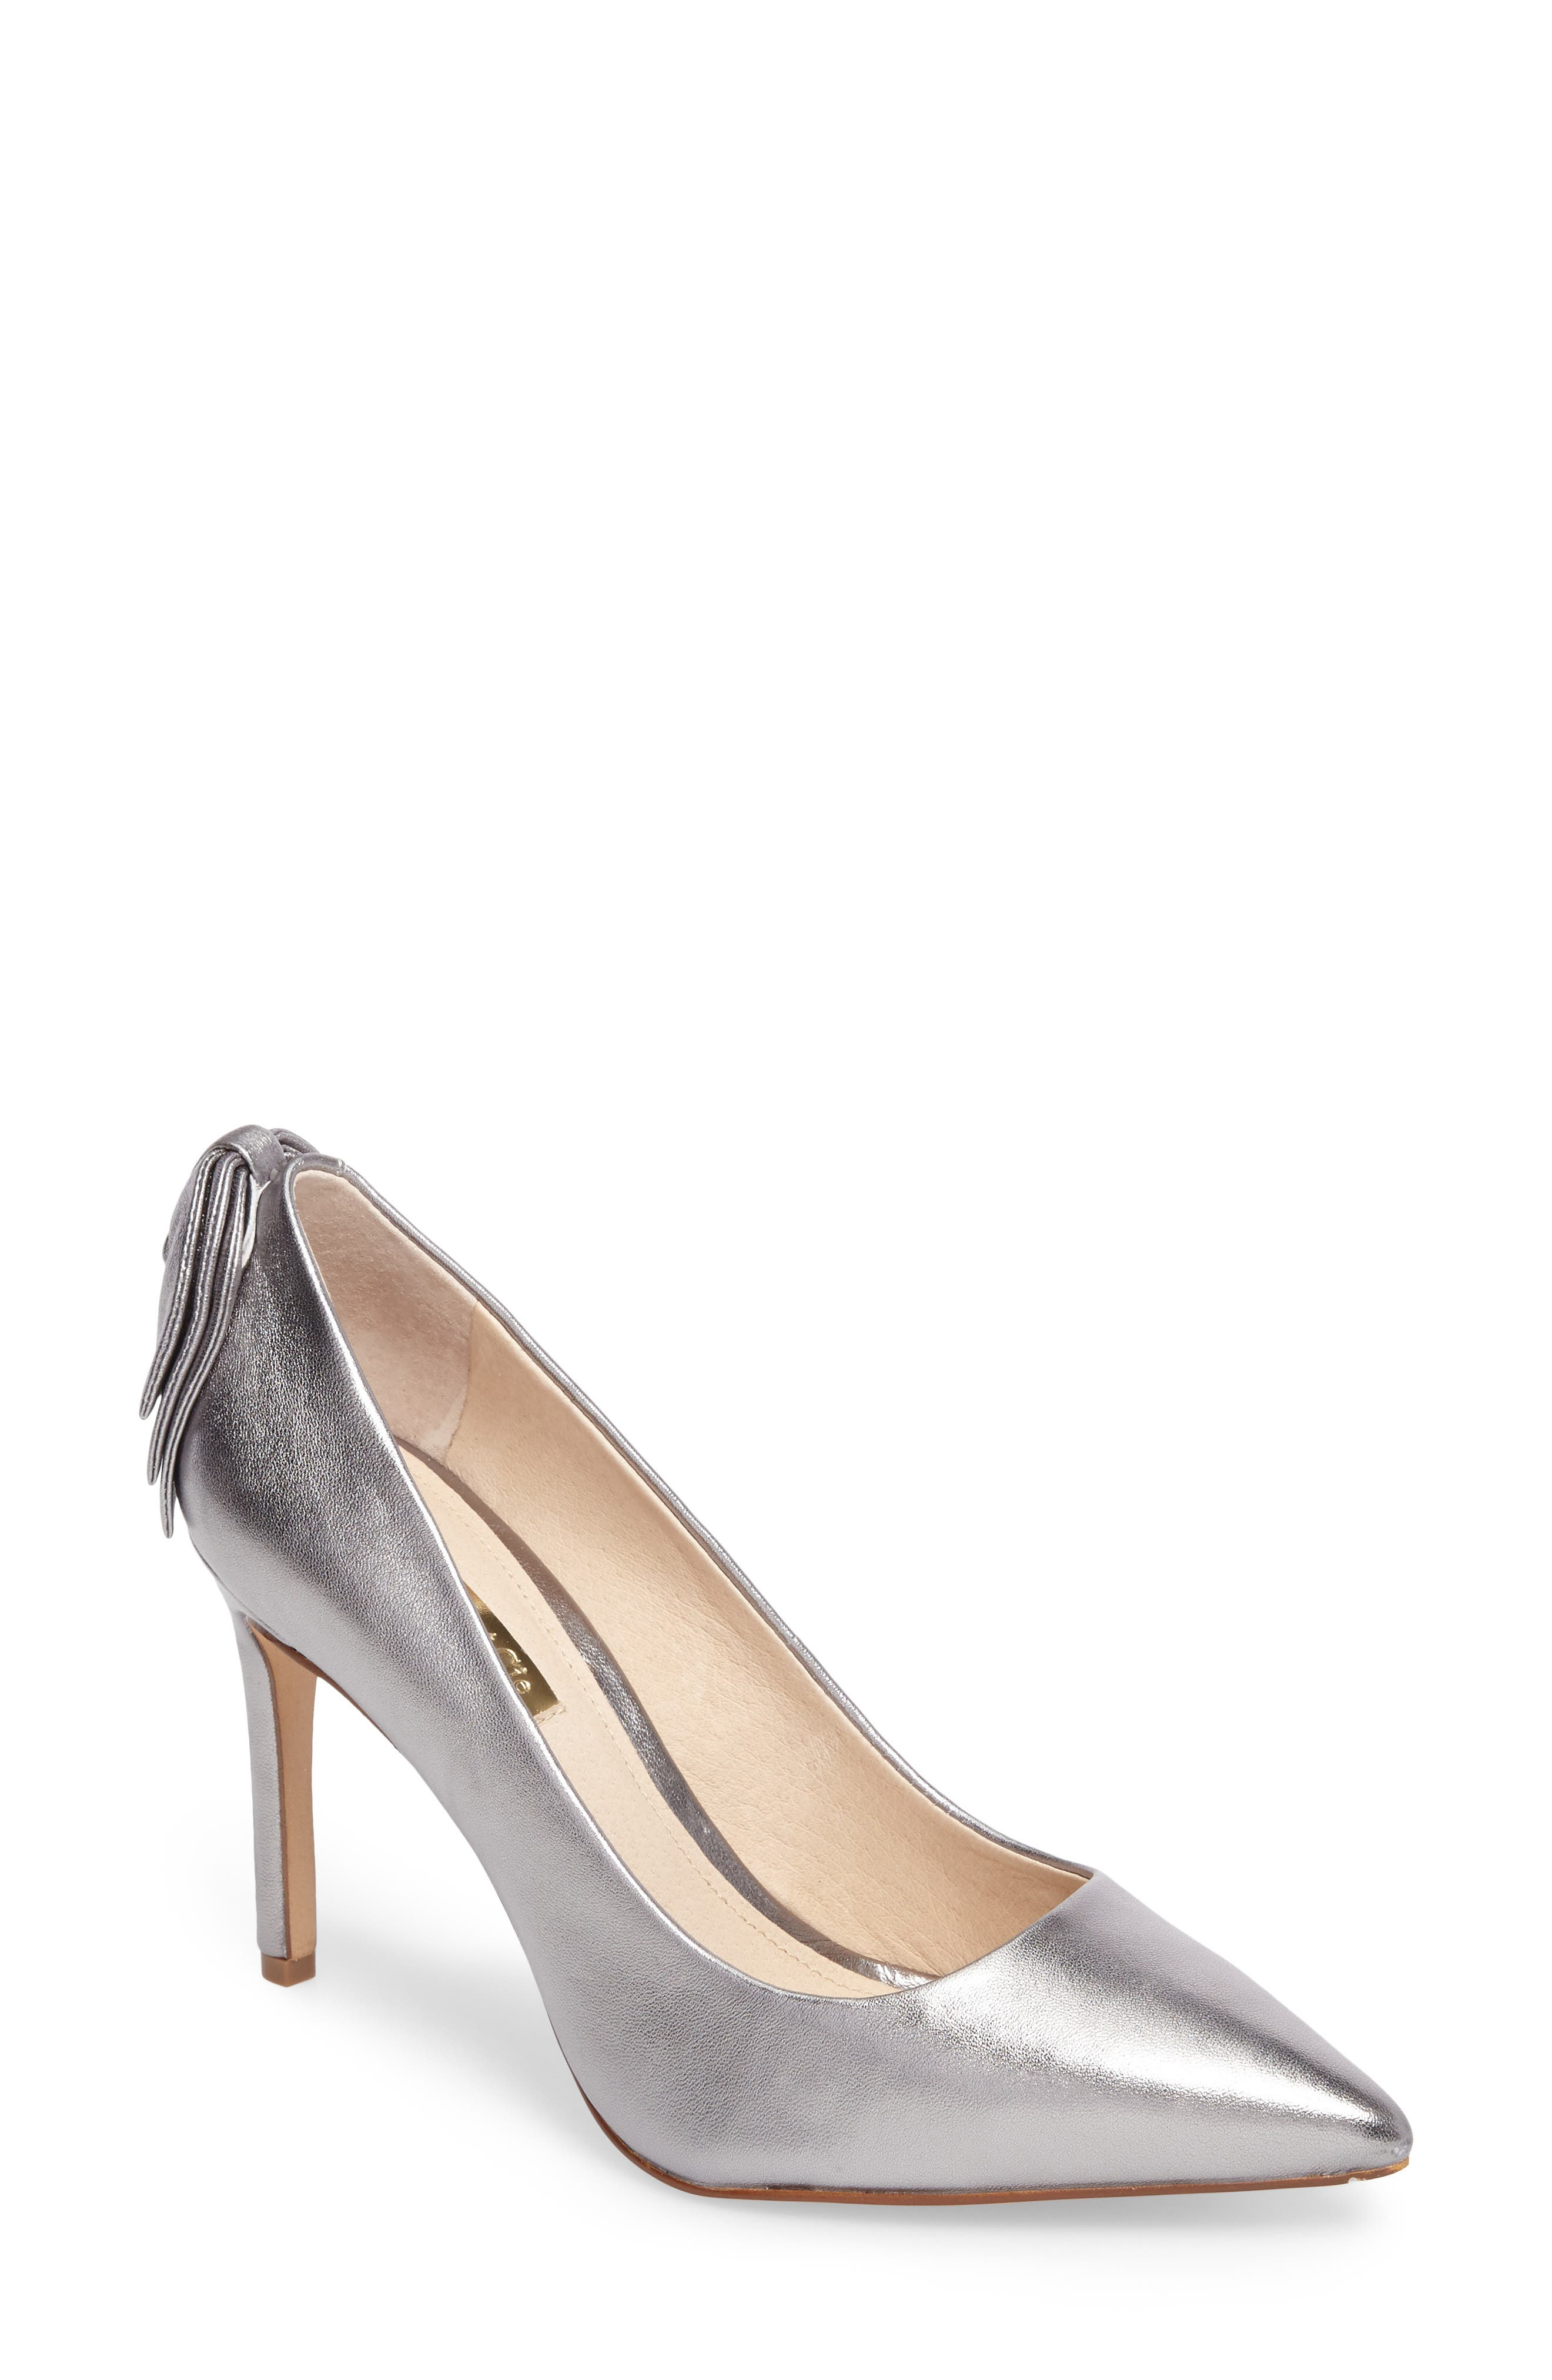 Josely Pointy Toe Pump,                         Main,                         color, Chrome Leather